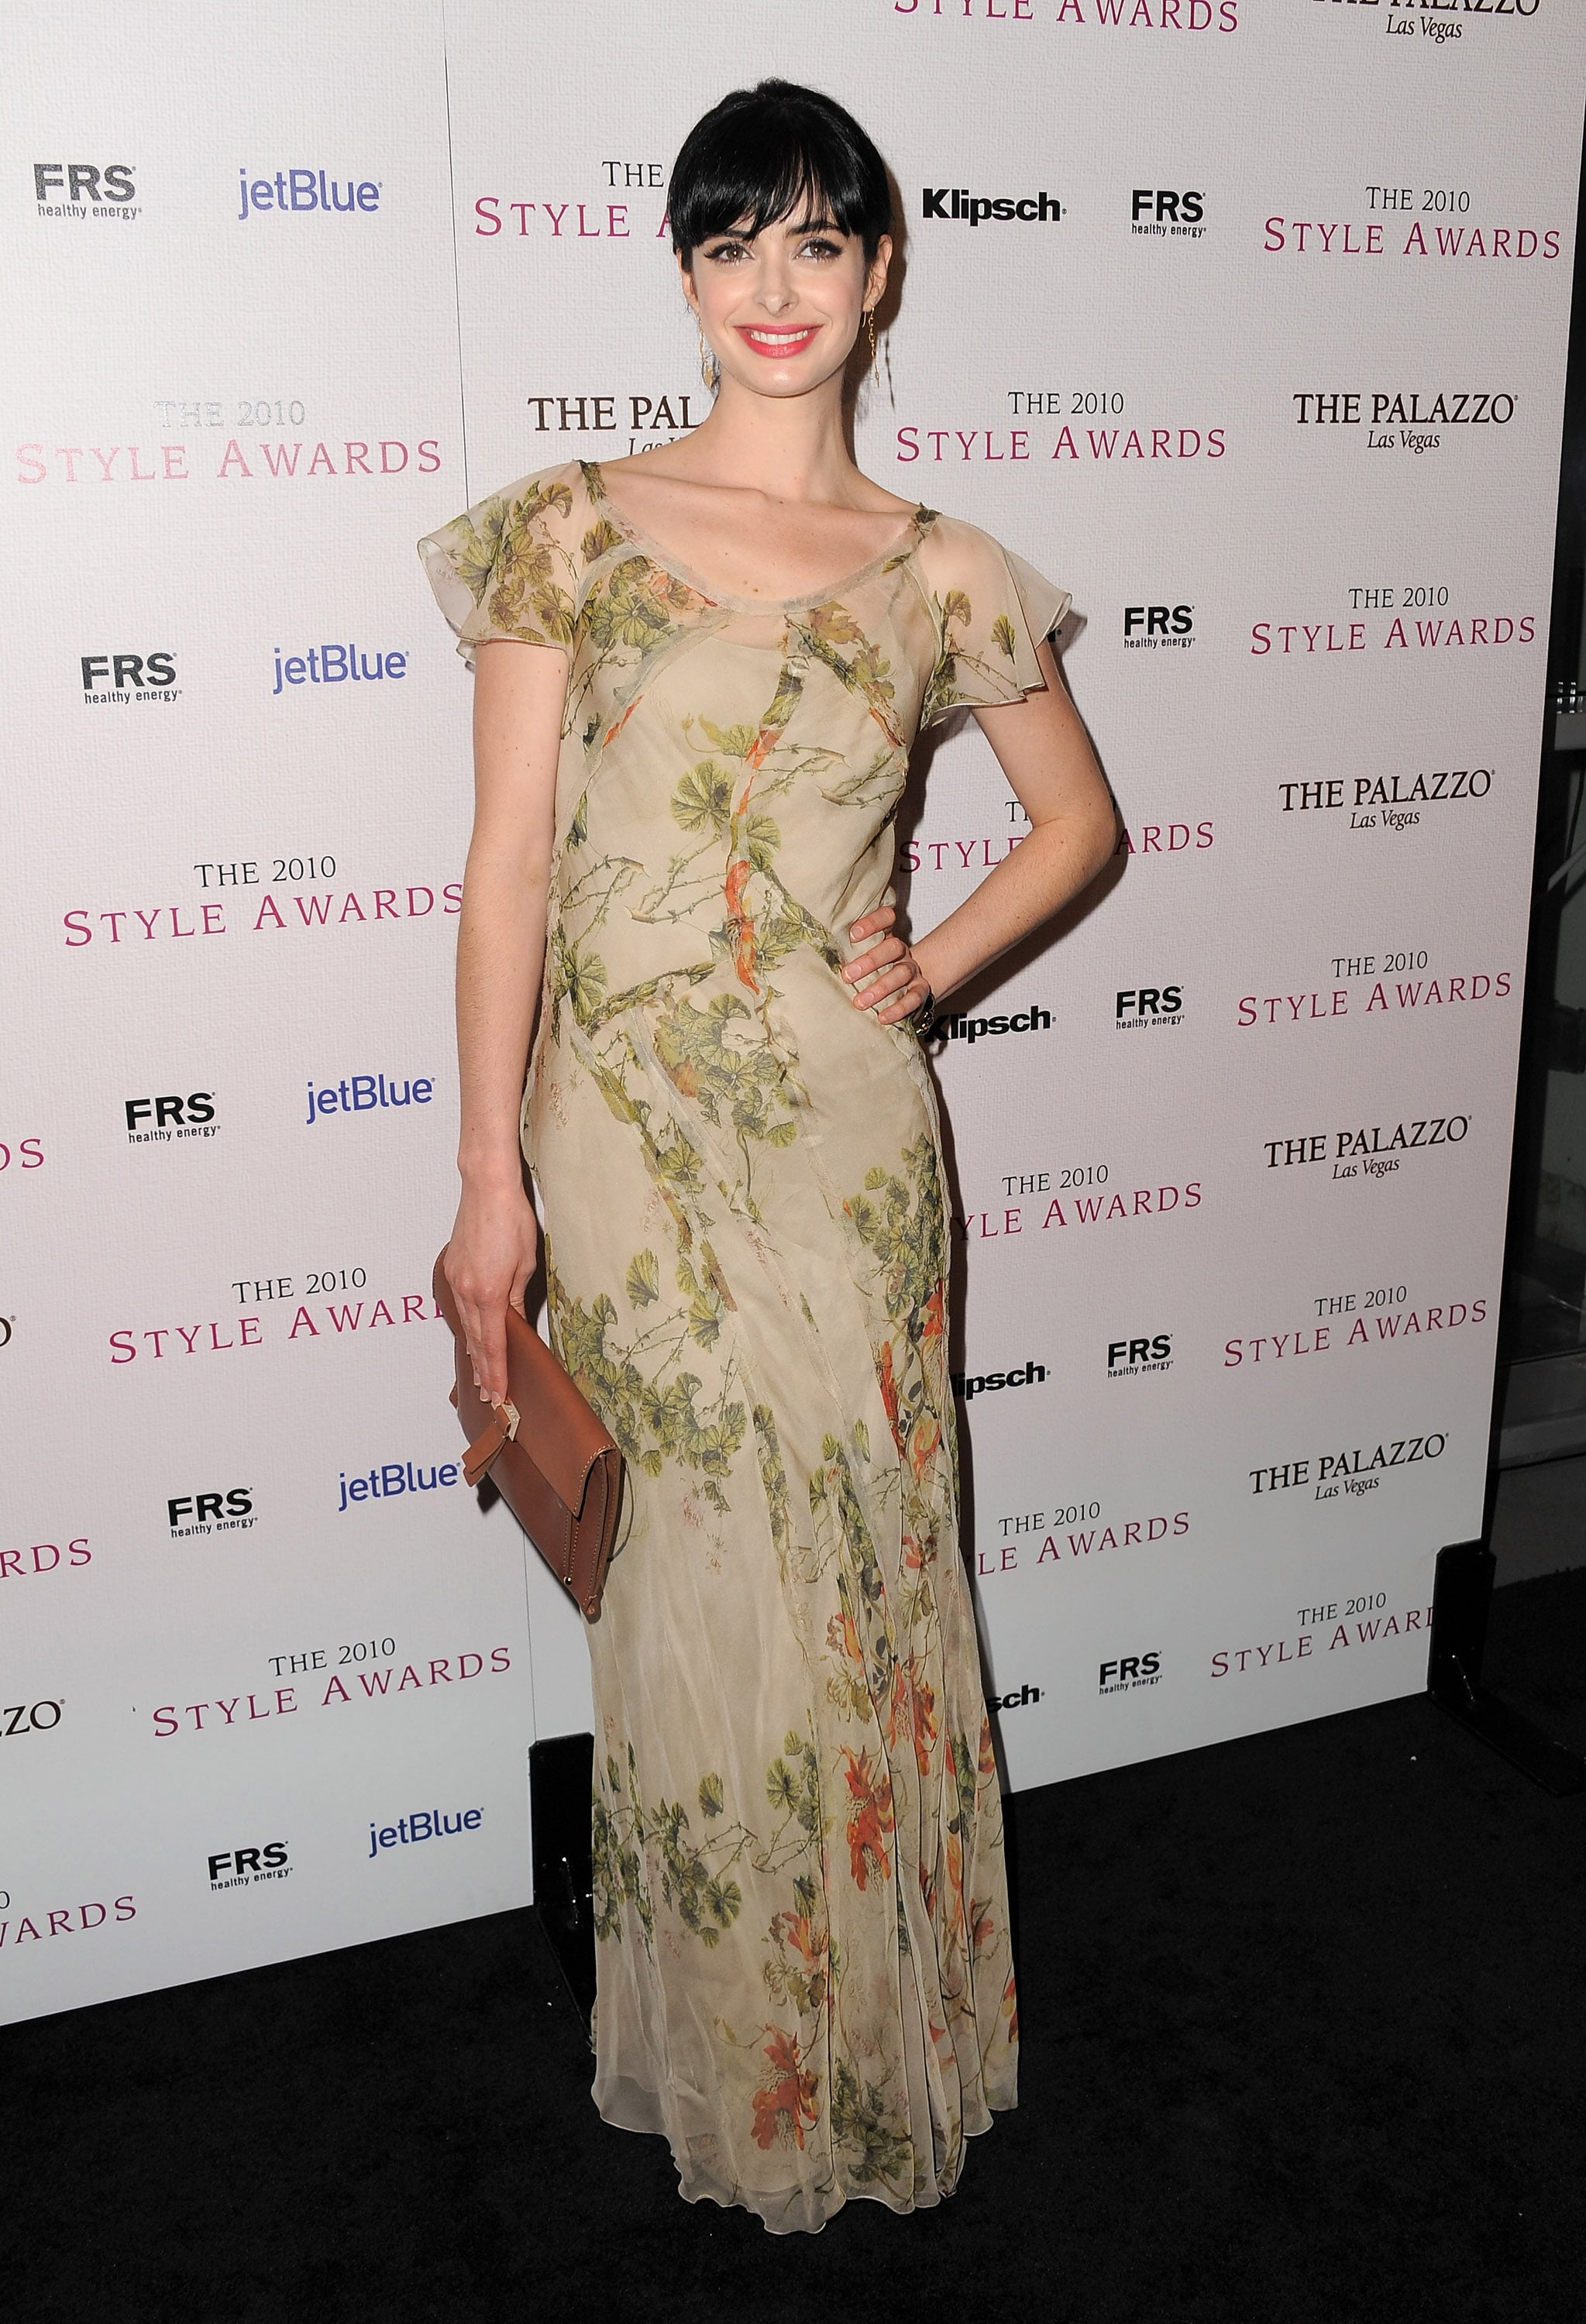 Krysten Ritter went for an ethereal look in a floral print Alberta Ferretti.